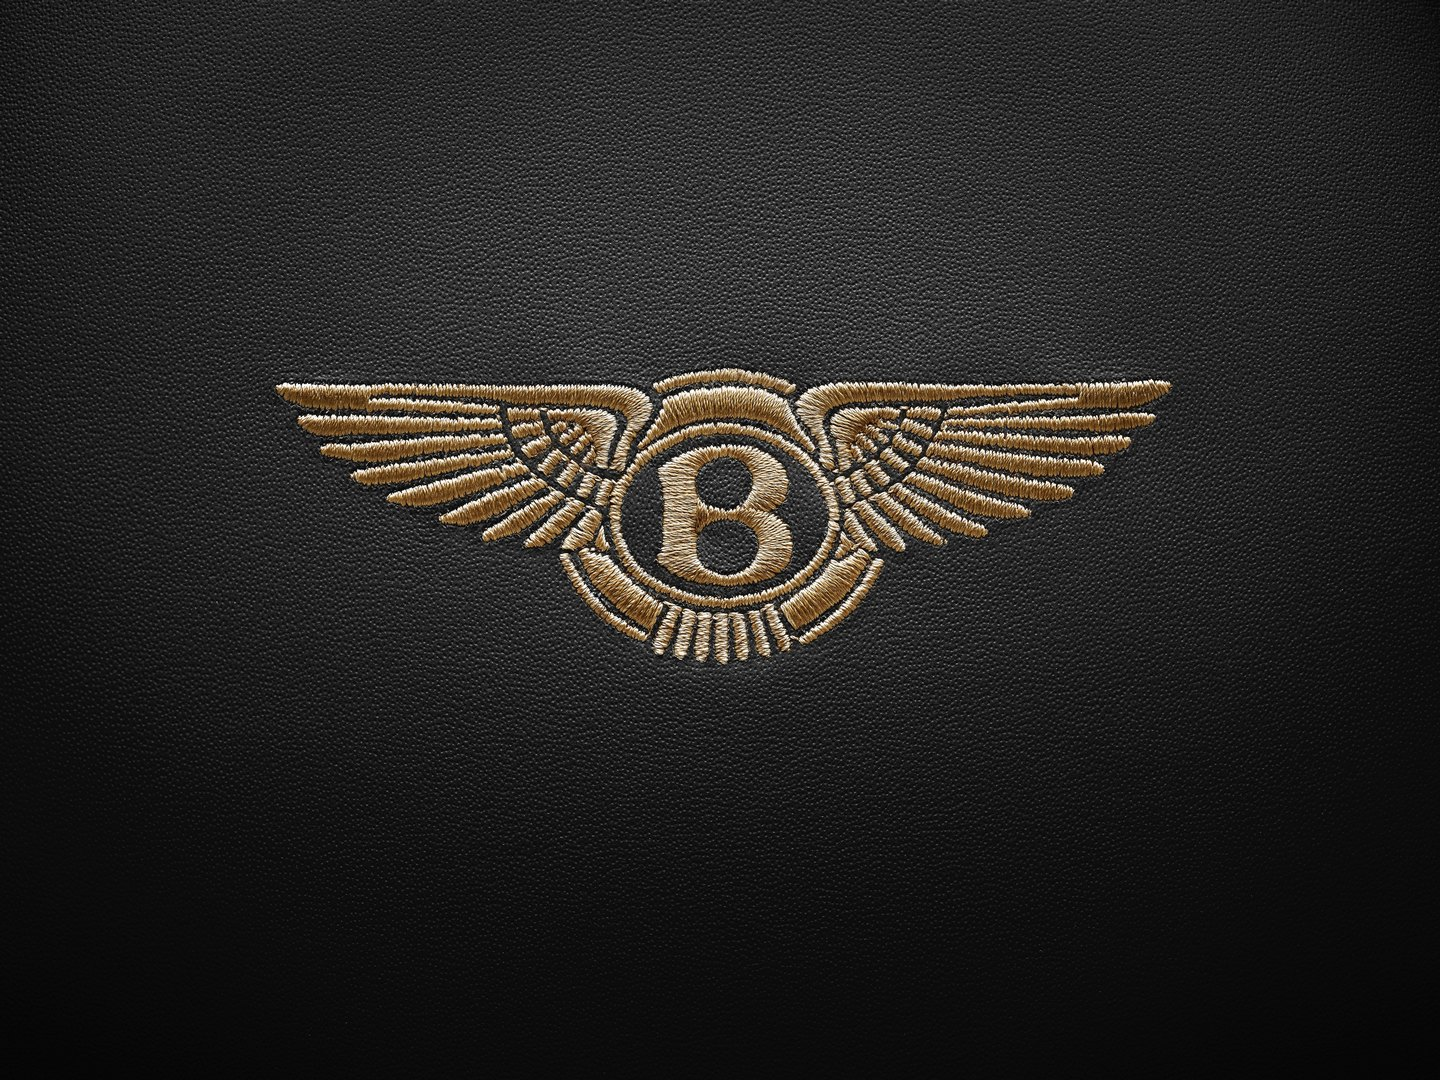 Bentley Headrest Emblem